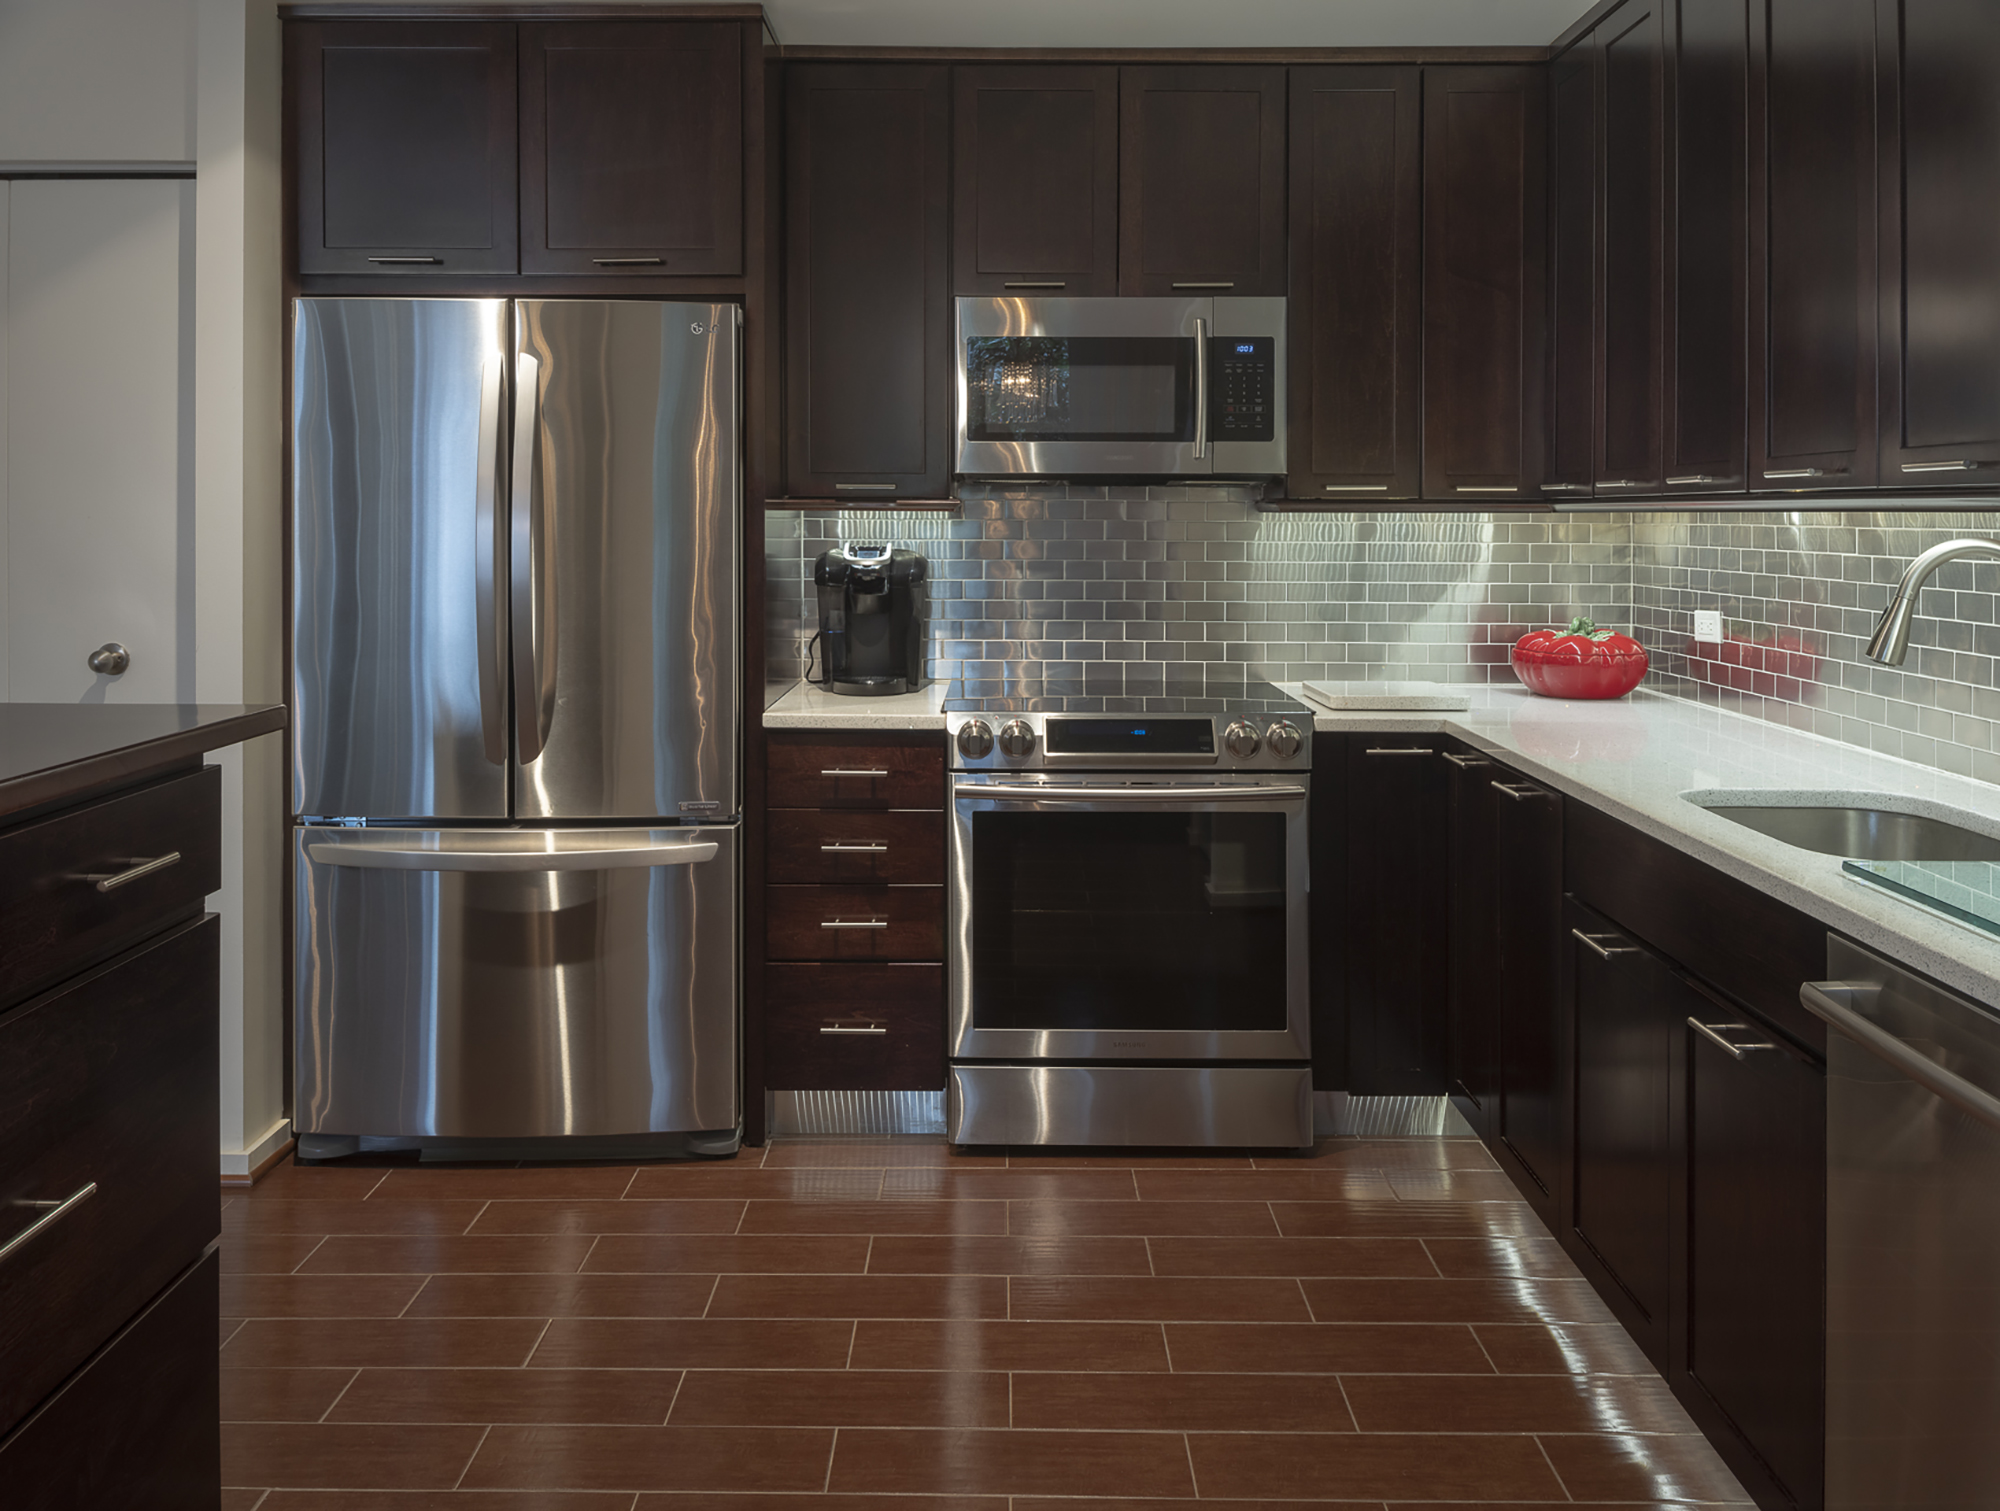 Building Your Dream Interior Kitchen with Dark Wood Cabinets Fridge and Oven